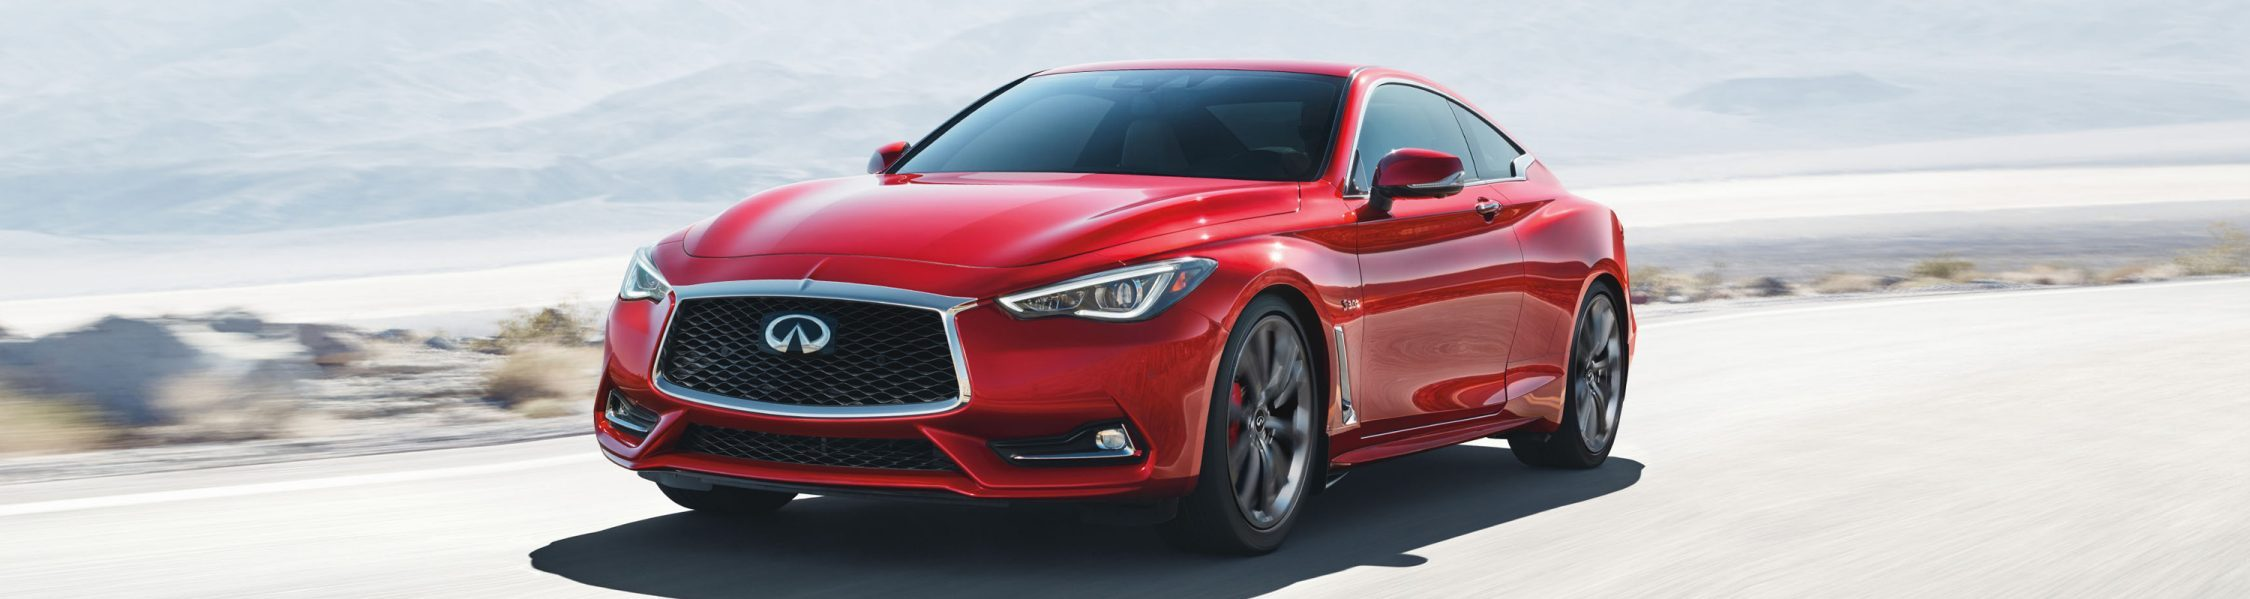 2018 INFINITI Q60 Red Sport 400 Performance Sports Coupe